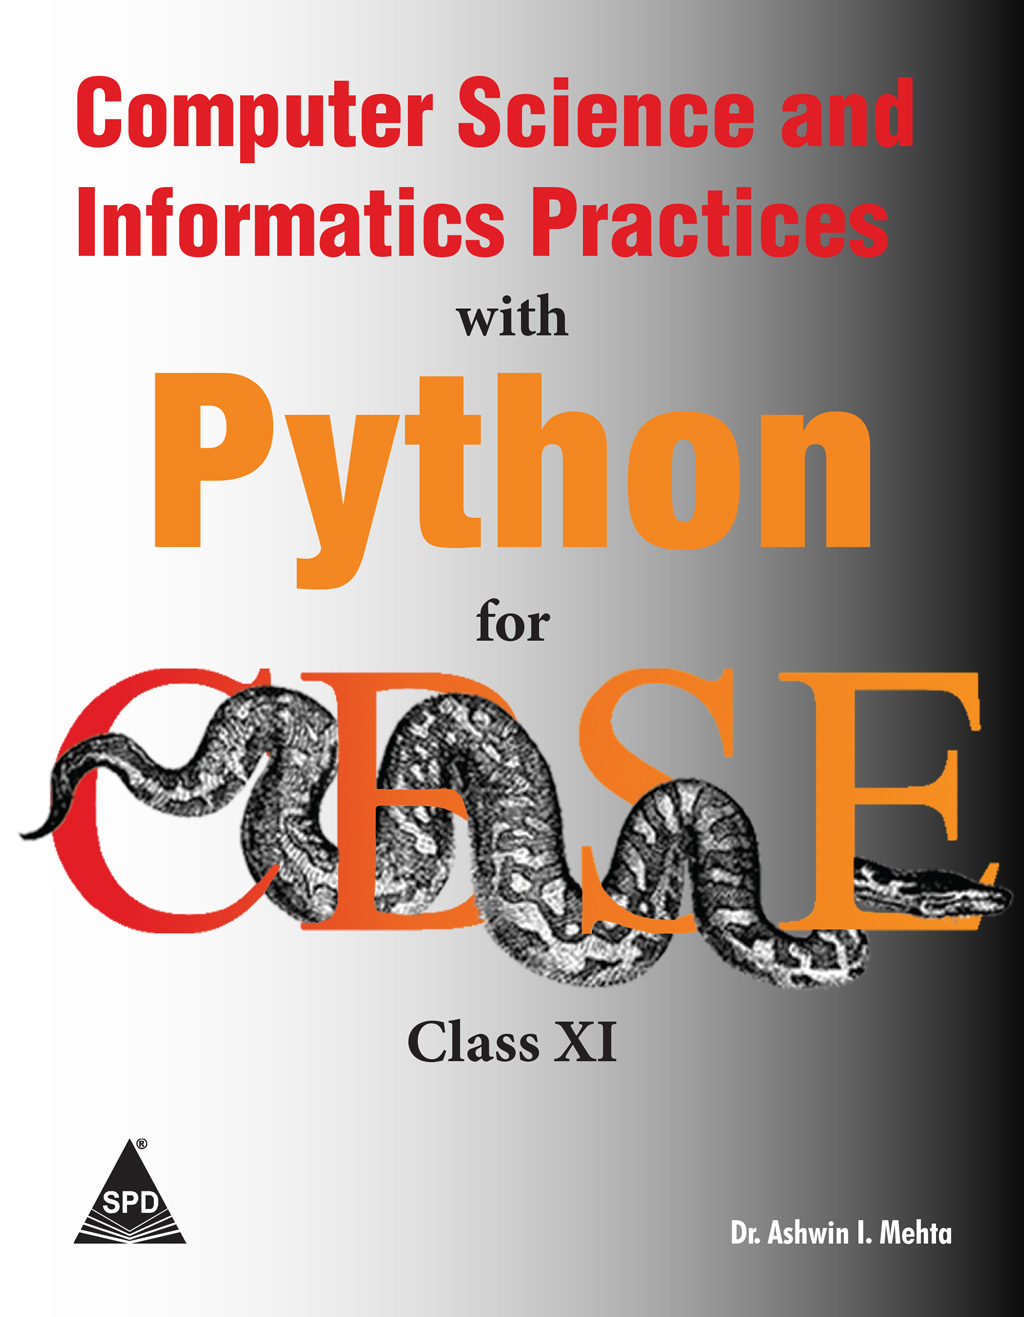 Computer Science and Informatics Practices with Python for CBSE Class XI  (11)